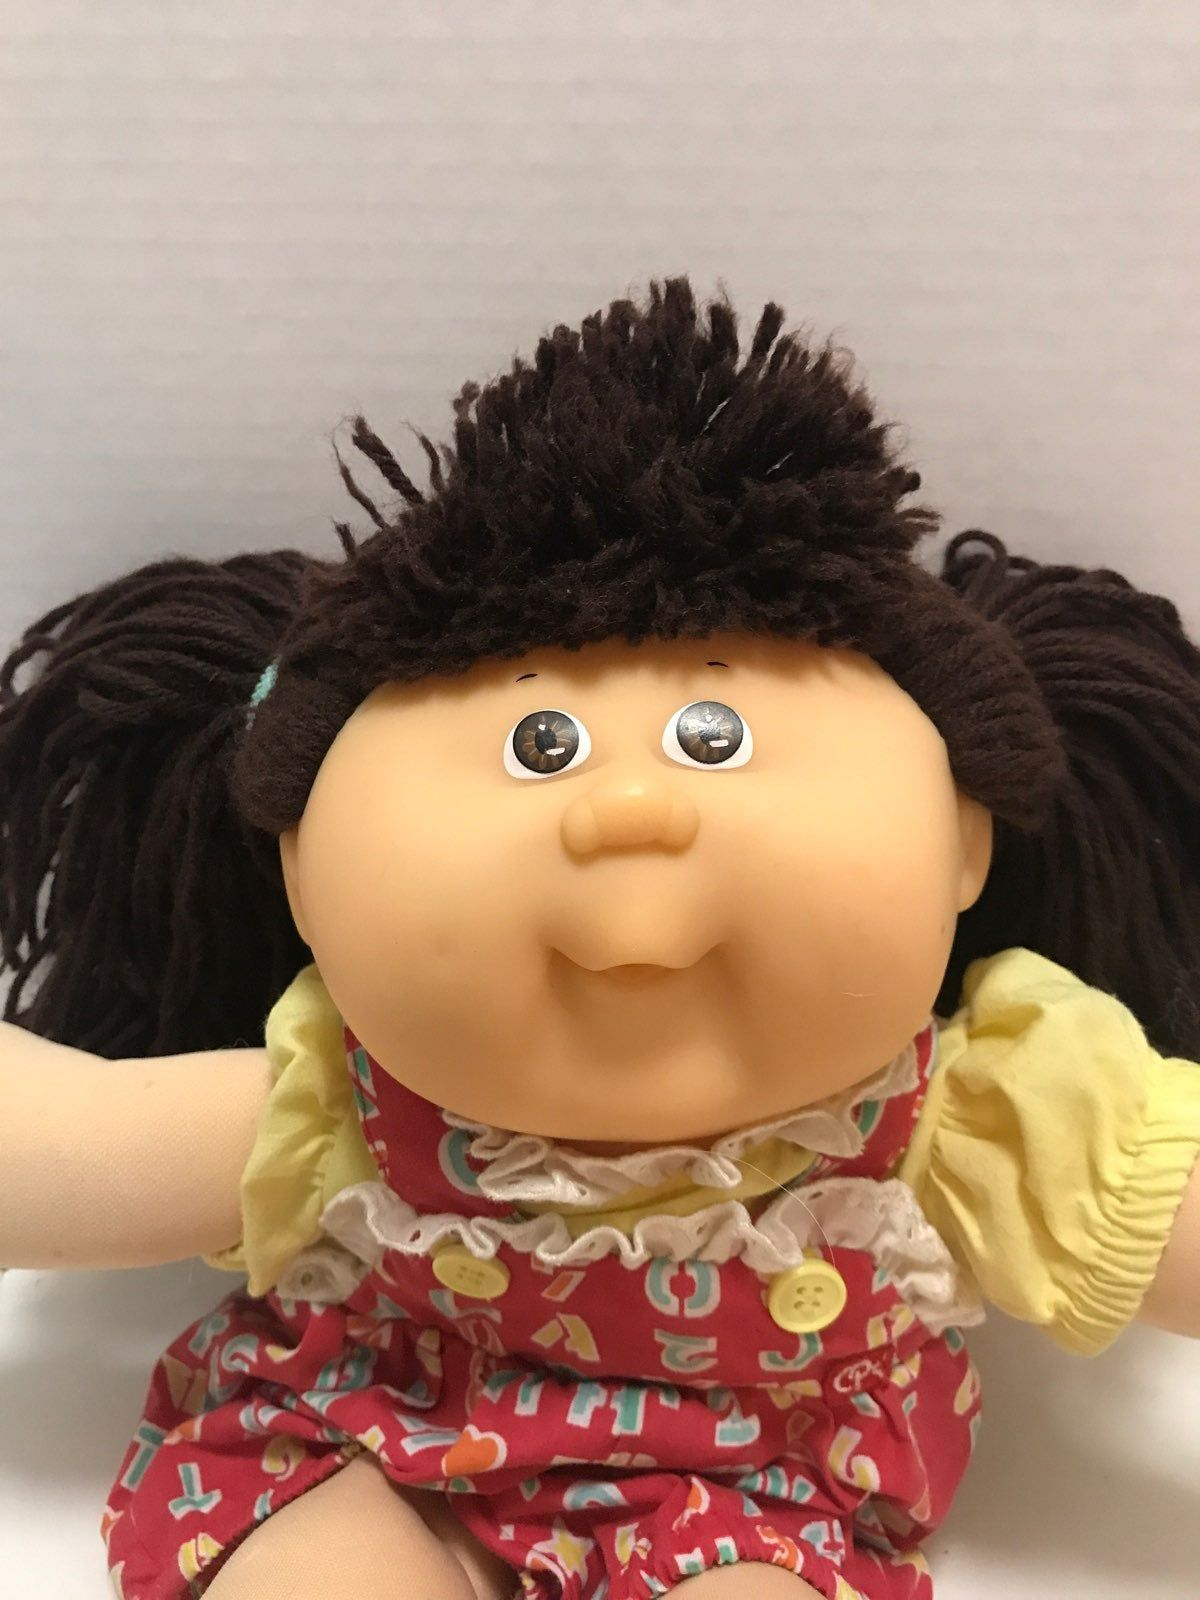 Cabbage Patch Doll 1982 1987 Xavier Roberts Signature Brown Hair Brown Eyes She Is 13 Tall Cabbage Patch Kids Dolls Cabbage Patch Dolls Cabbage Patch